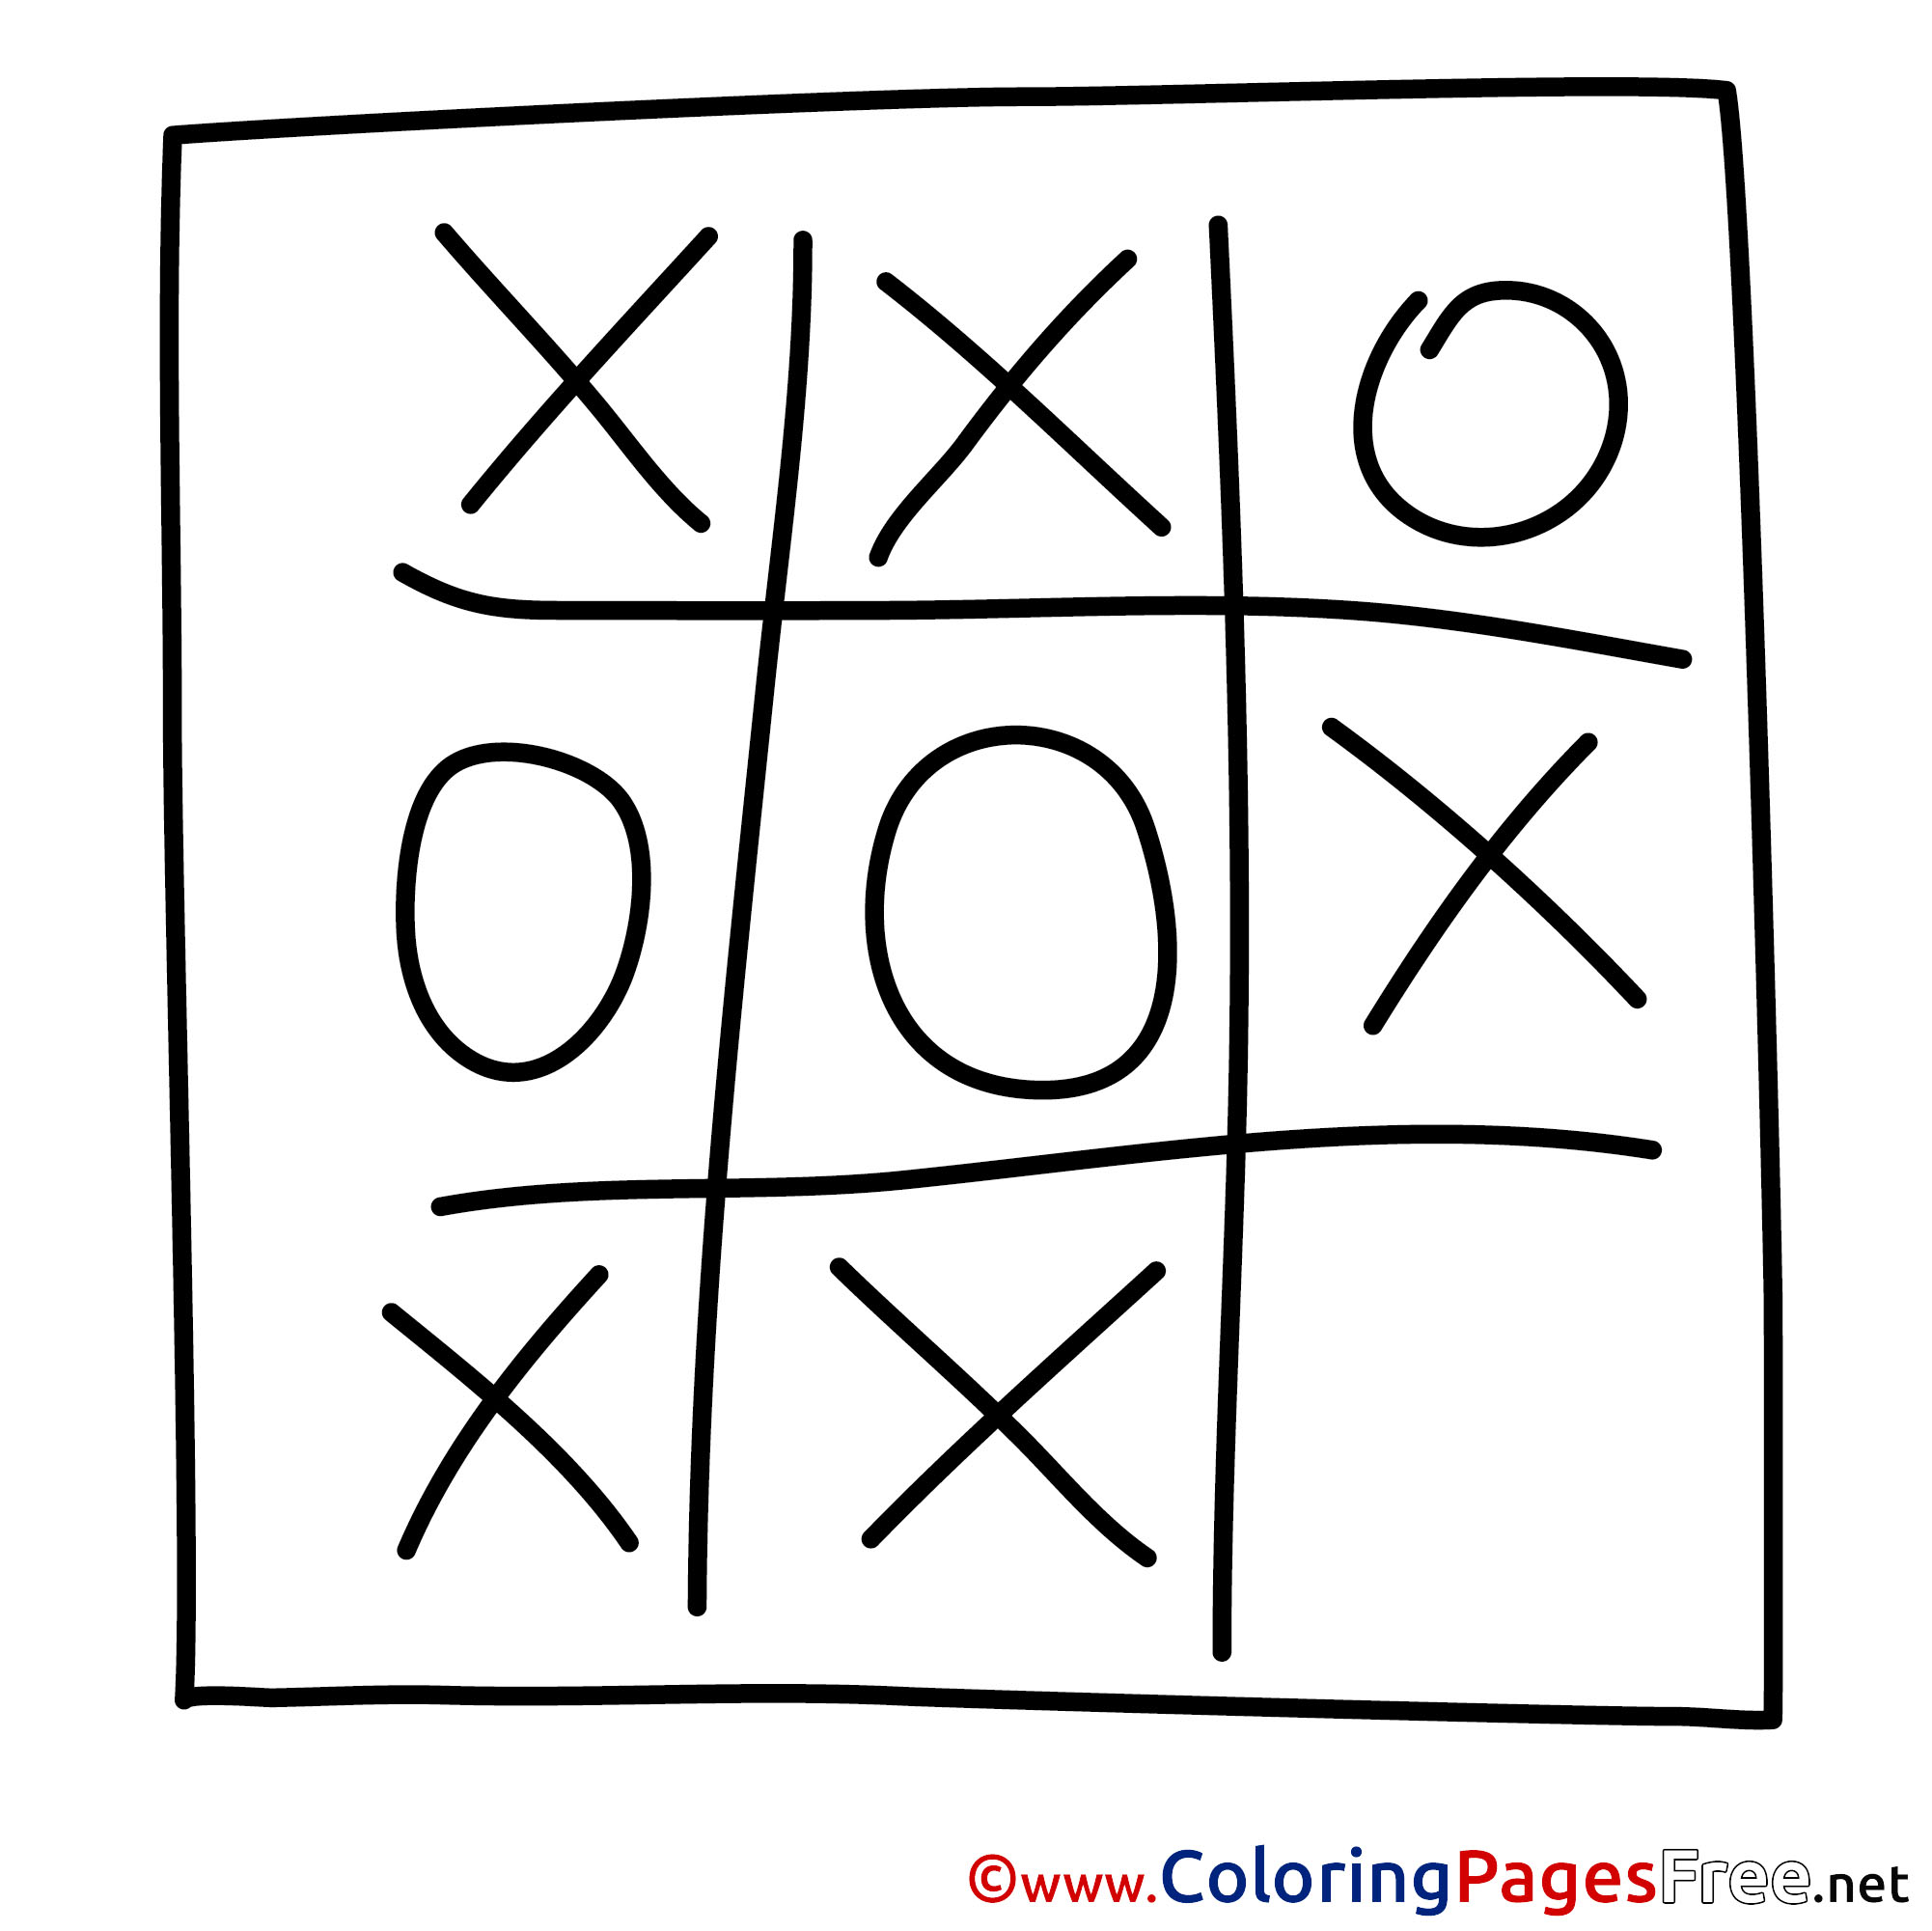 Tic-tac Toe Templates to Download for Free